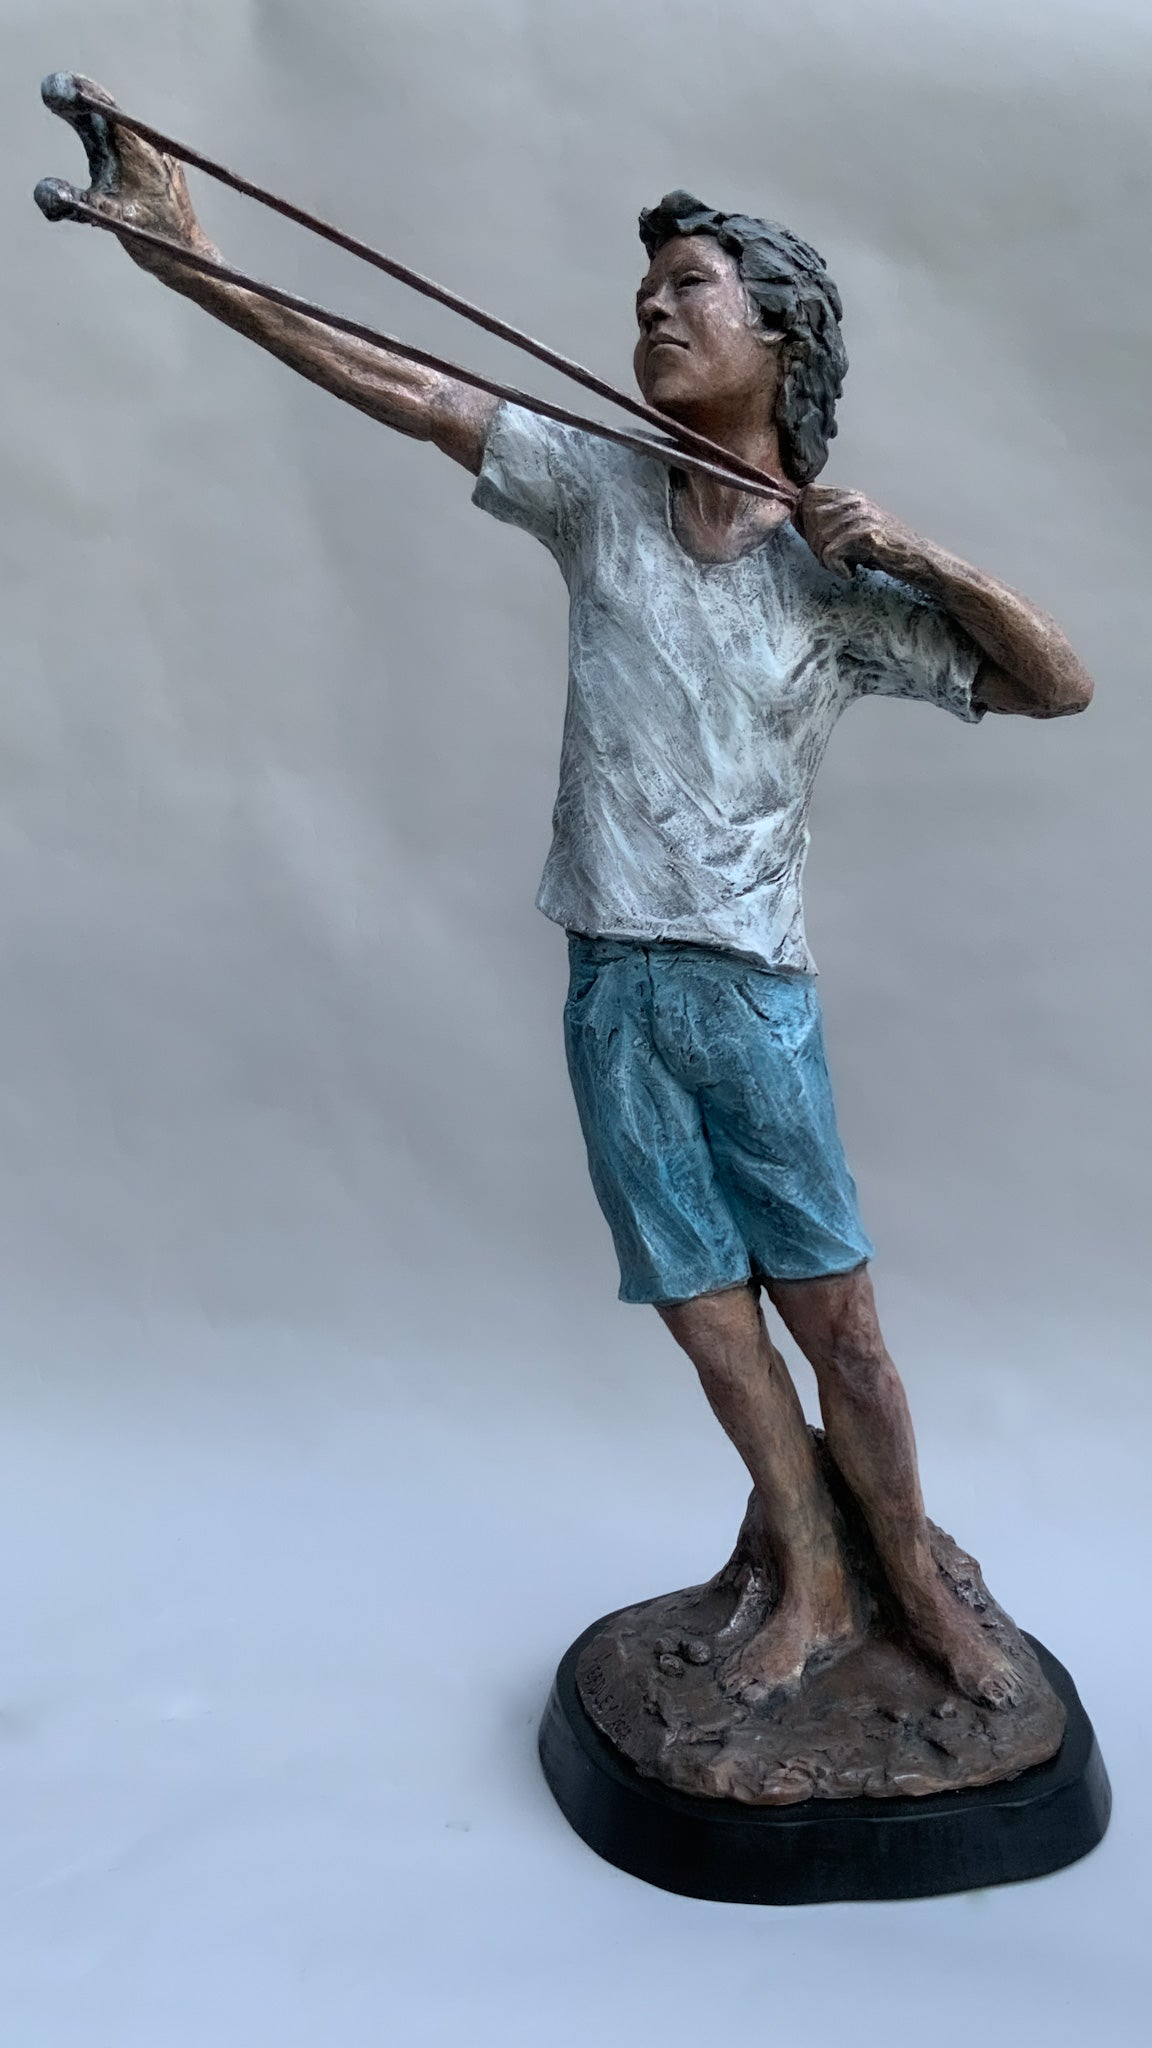 Taking Aim | Stoneware Sculpture | Boy Draws His Sling-Shot to Full Extent | Ready to Fire!